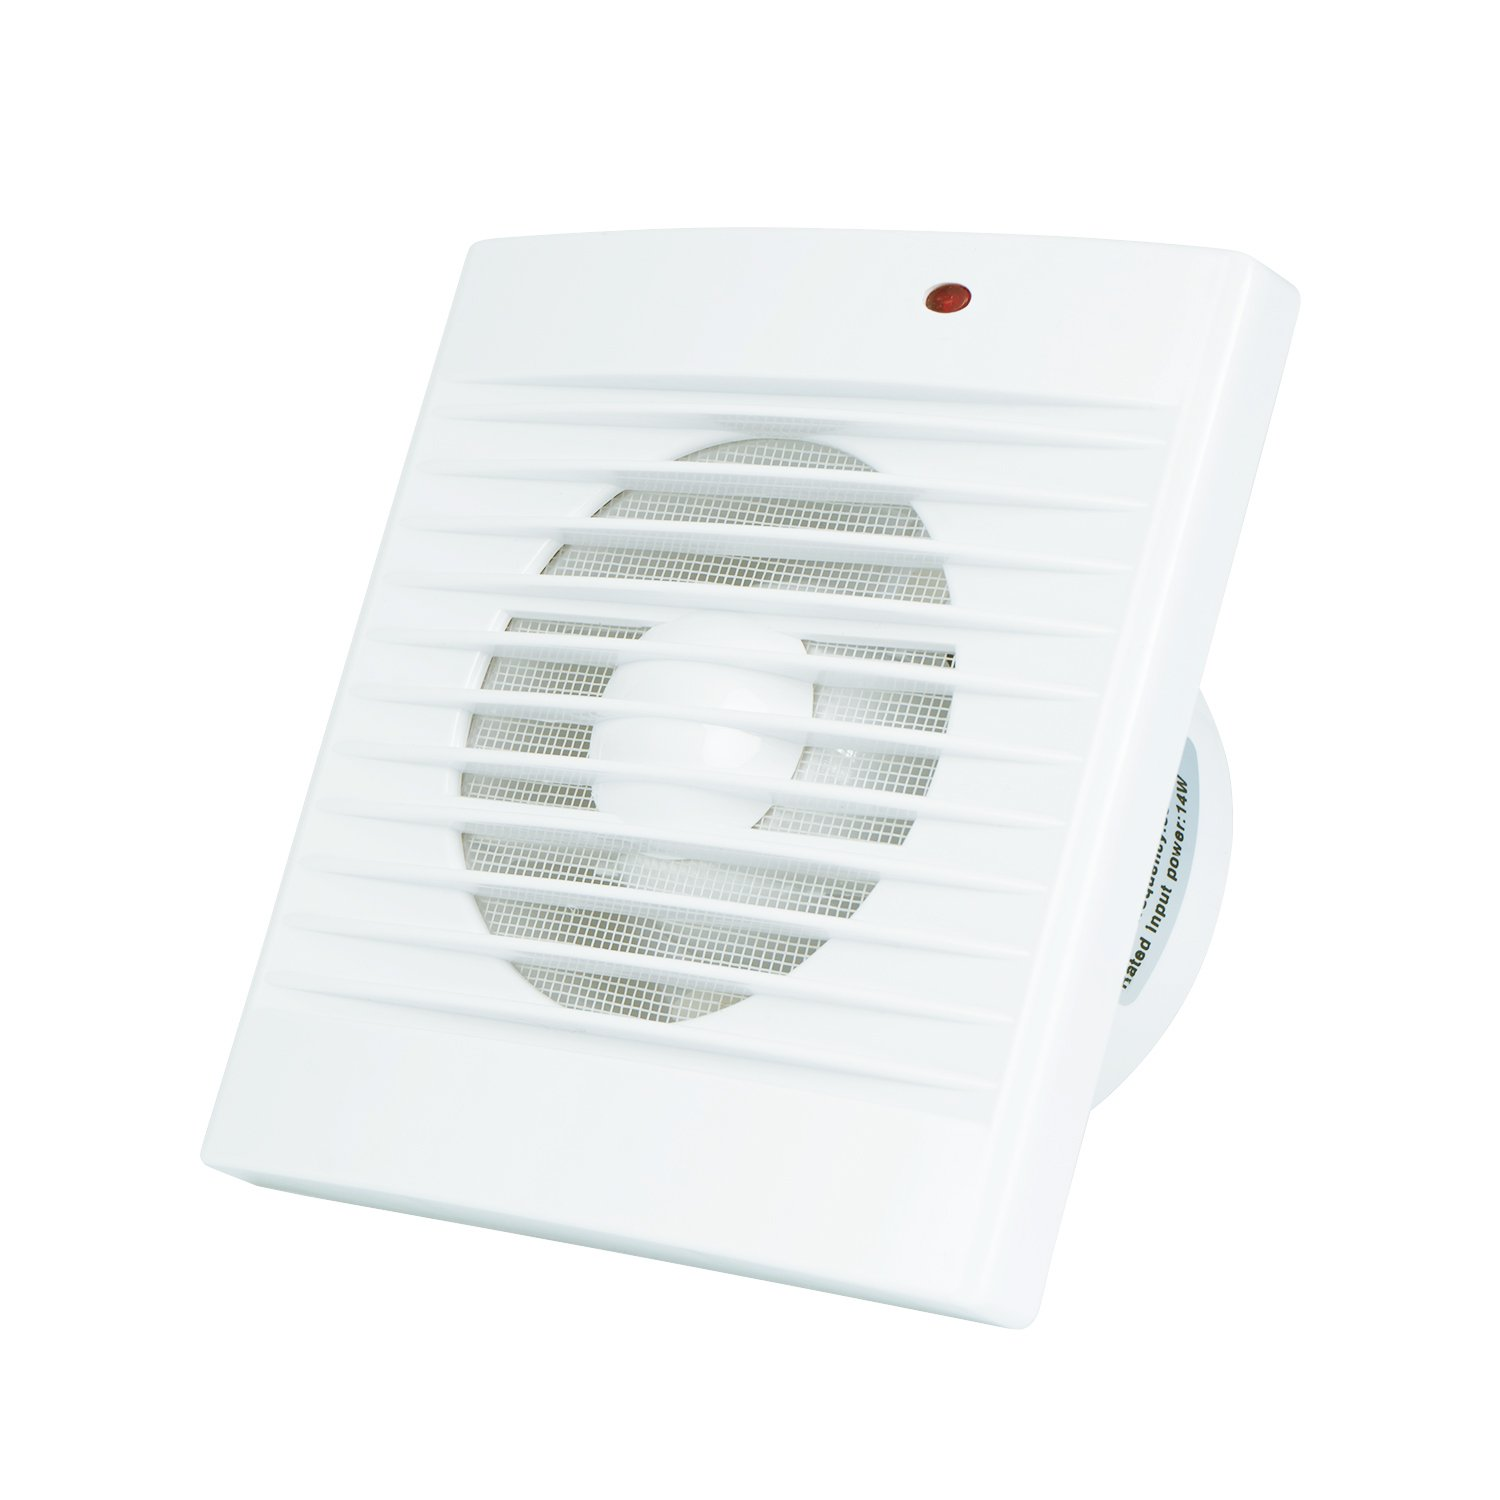 Ventilation Exhaust Fan, HG POWER Strong Exhaust Extrator Fan Wall Mount & Ceiling Exhaust Fan Built-in Household Ventilation Fans (PI372) by HG POWER (Image #7)